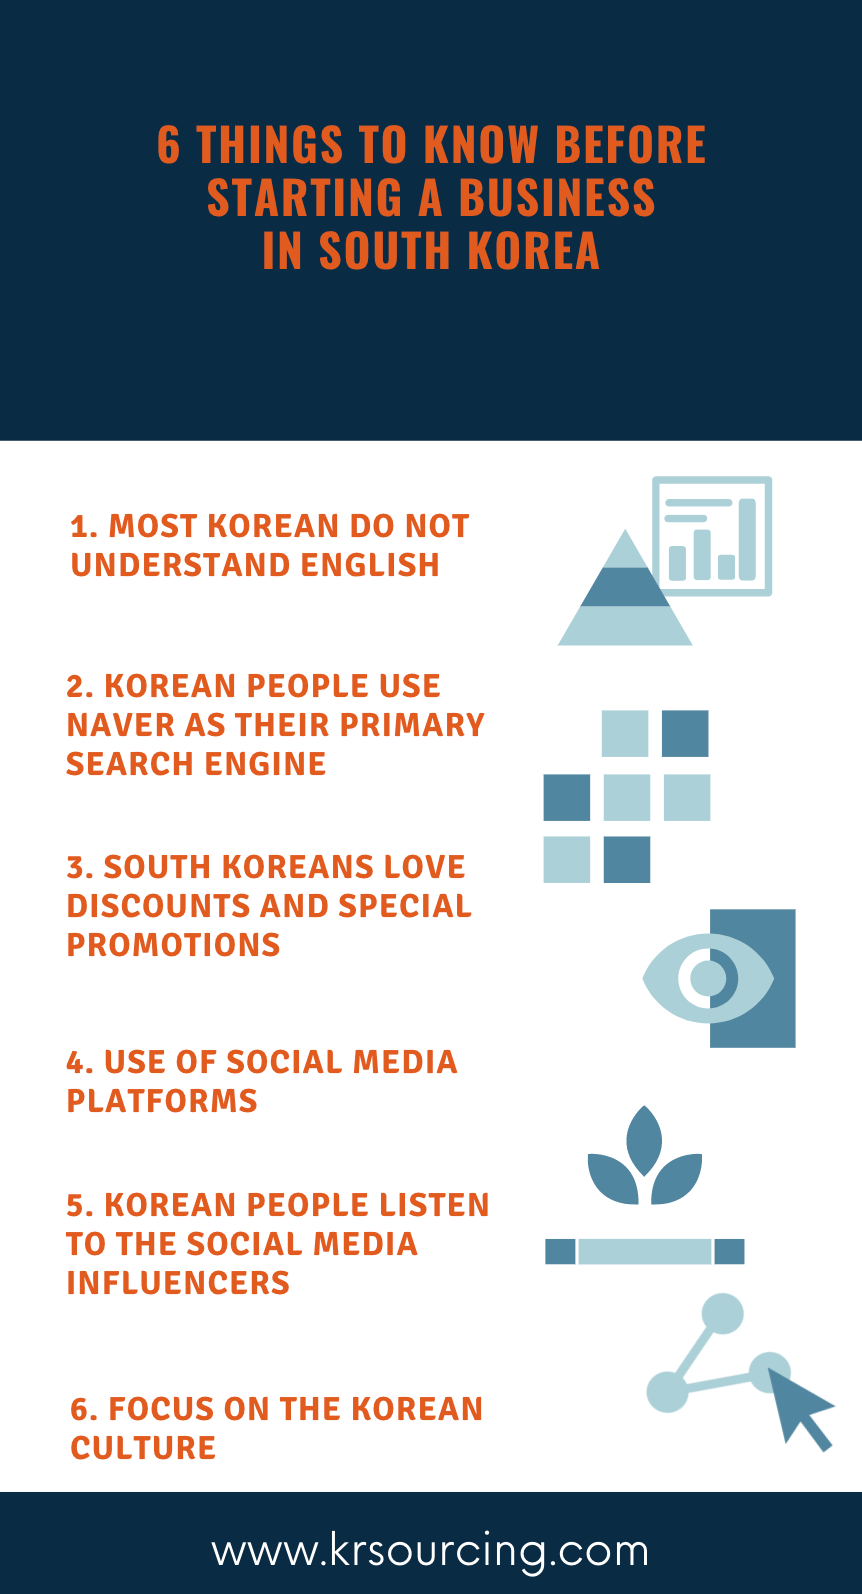 Things to know before starting a business in South Korea